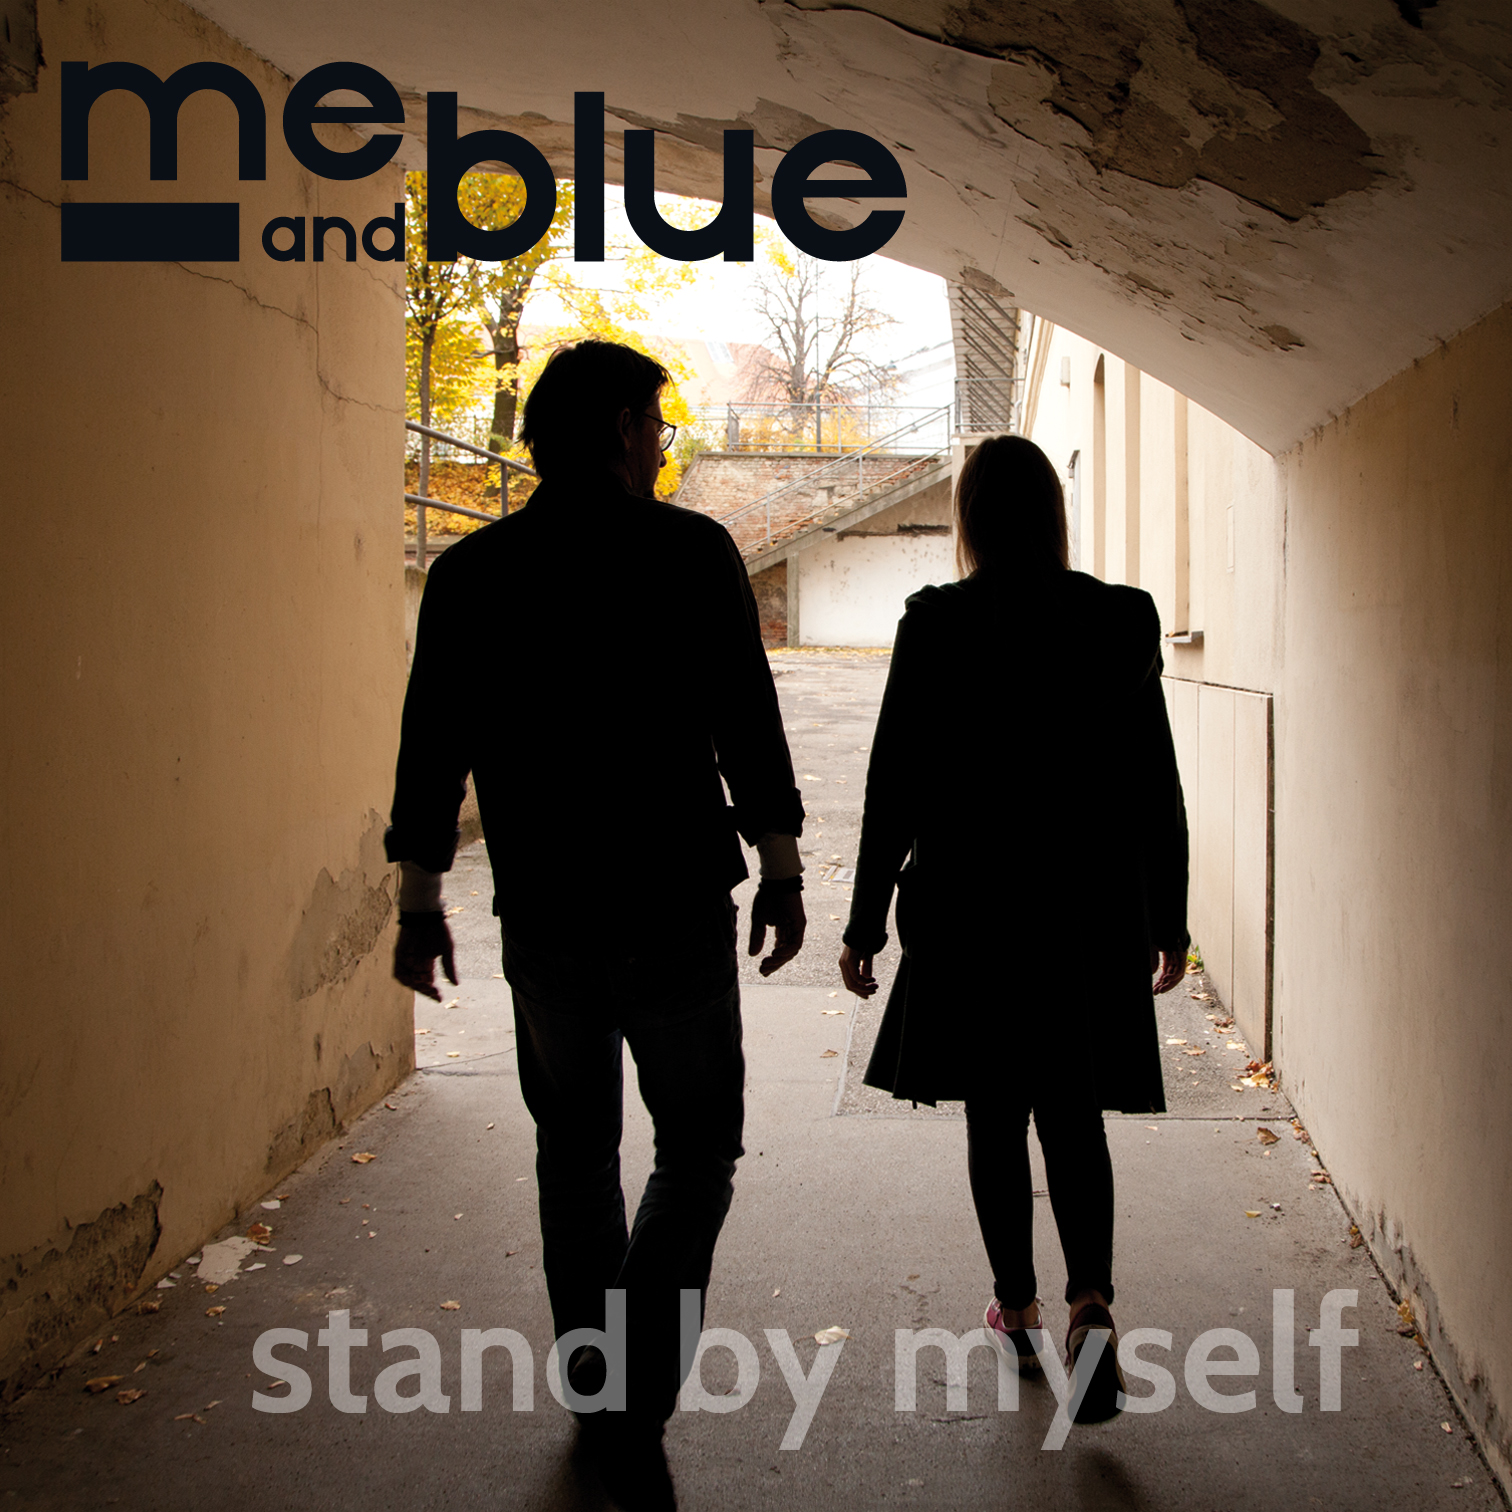 stand by myself